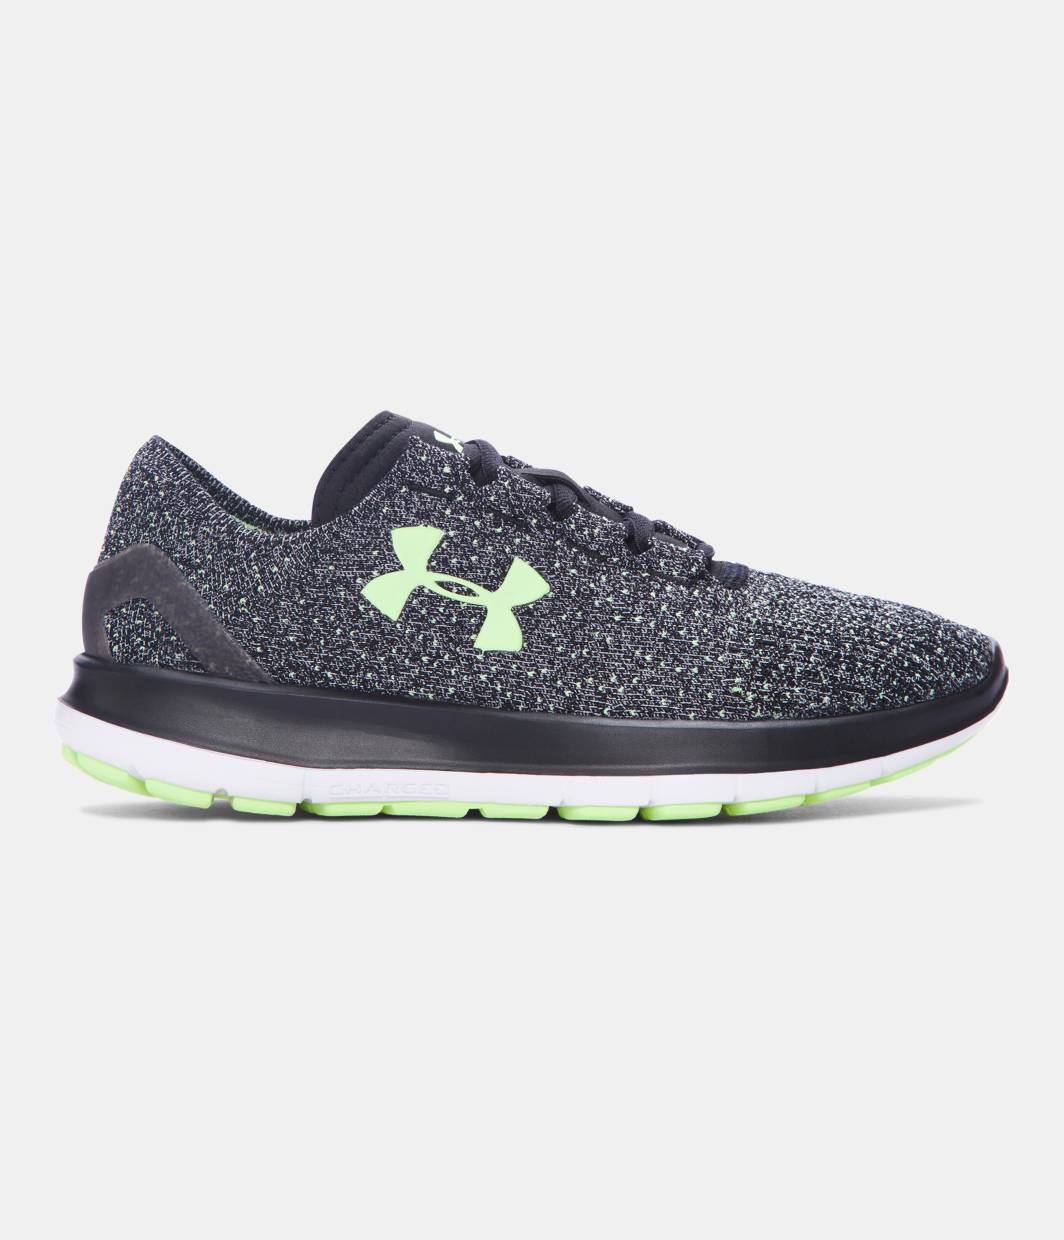 Under Armour Speedform Slingride Tri Running Shoes